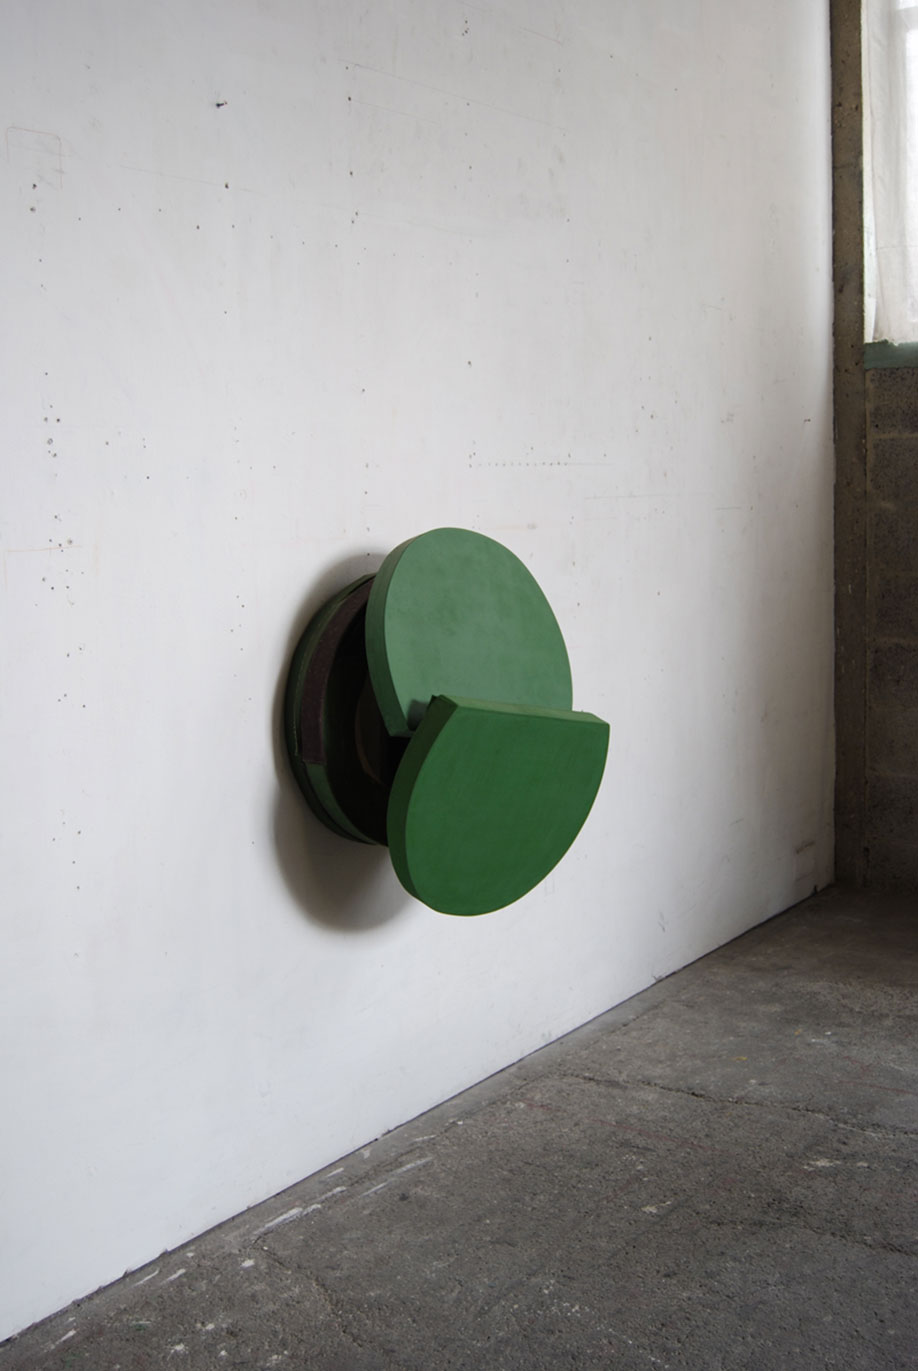 <b>Title: </b>Green Fall<br /><b>Year: </b>2010<br /><b>Medium: </b>Oil, canvas, wood, and aluminium<br /><b>Size: </b>86.5 x 62 x 40 cm